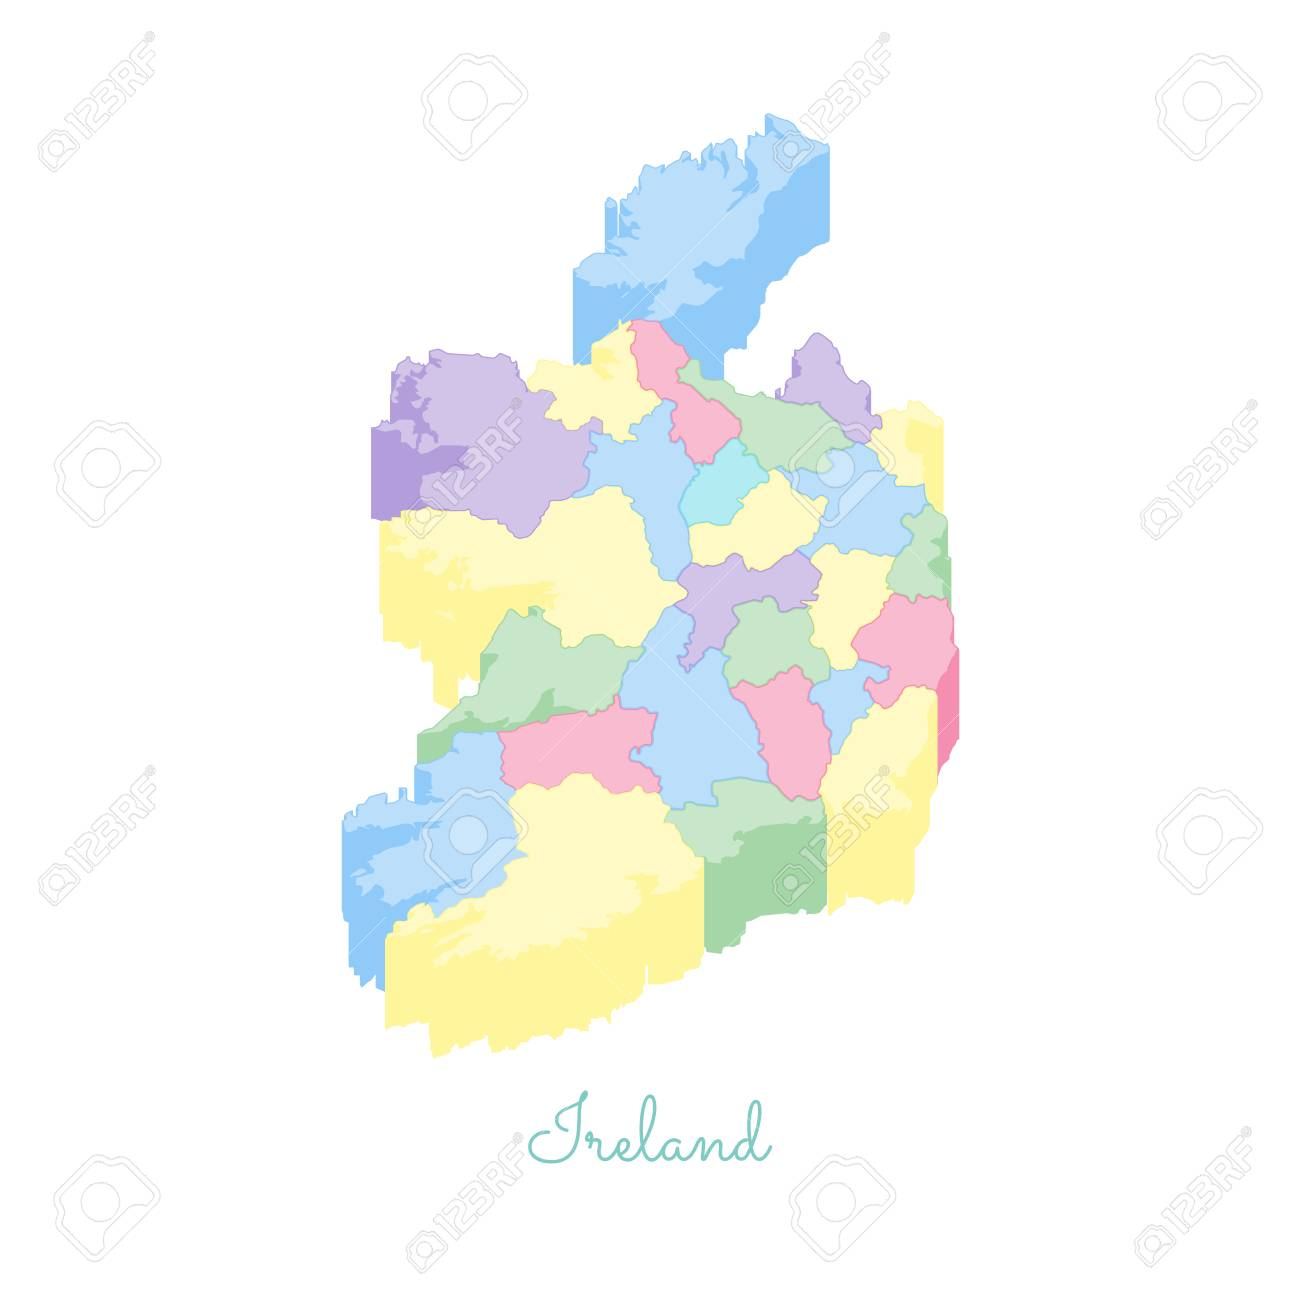 Detailed Map Of Ireland.Ireland Region Map Colorful Isometric Top View Detailed Map